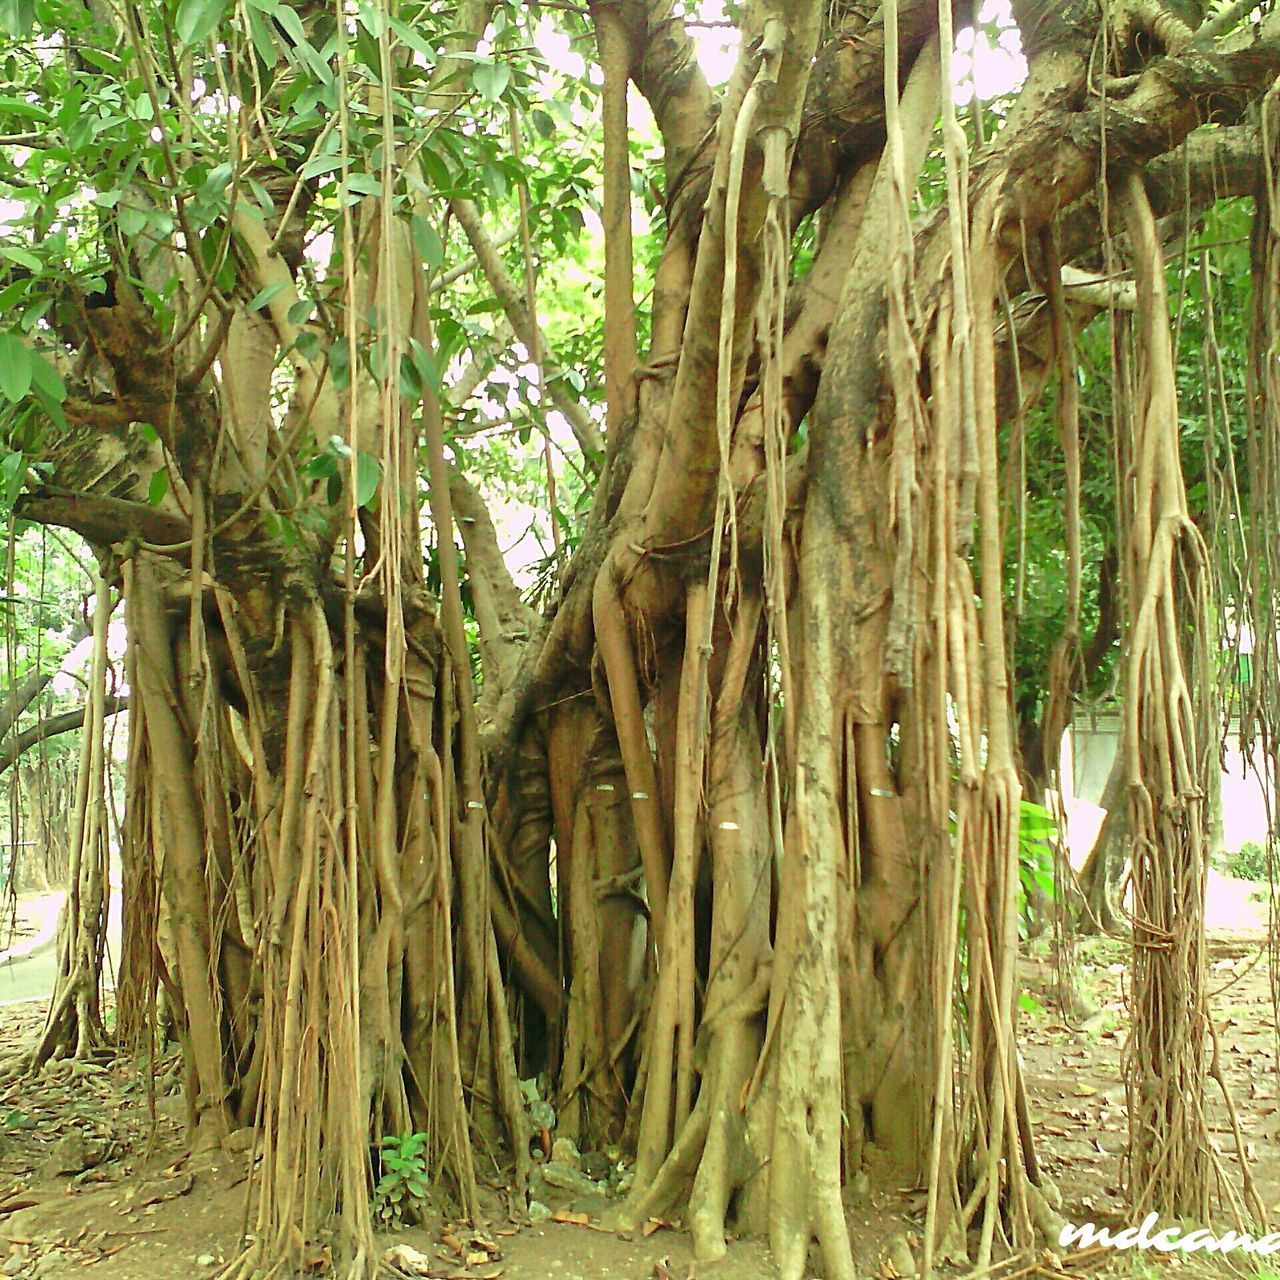 Tree Nature Tree Trunk Growth No People Outdoors Day Beauty In Nature Philippines Trees And Nature Outdoor Photography Outdoors, Outside, Open-air, Air, Fresh, Fresh Air, Outdoor Beauty Beauty In Nature Green Color Nature Growth Trees Outdoor Pictures Philippines Photos